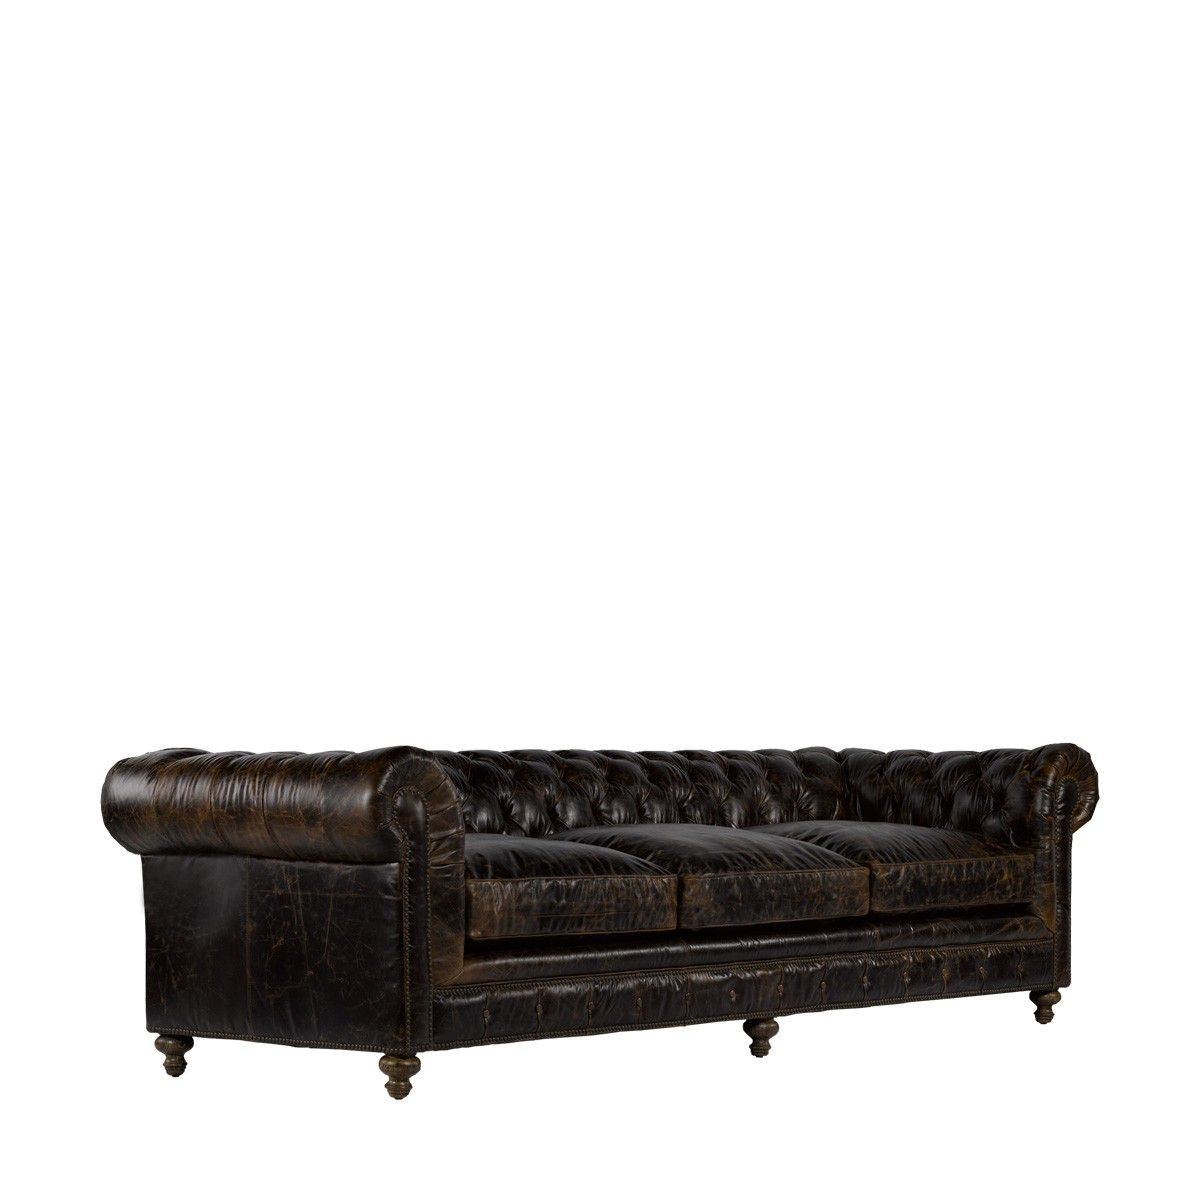 Curations Limited 118 Inches Cigar Club Leather Sofa 7842.3008.1 From  Walter E. Smithe